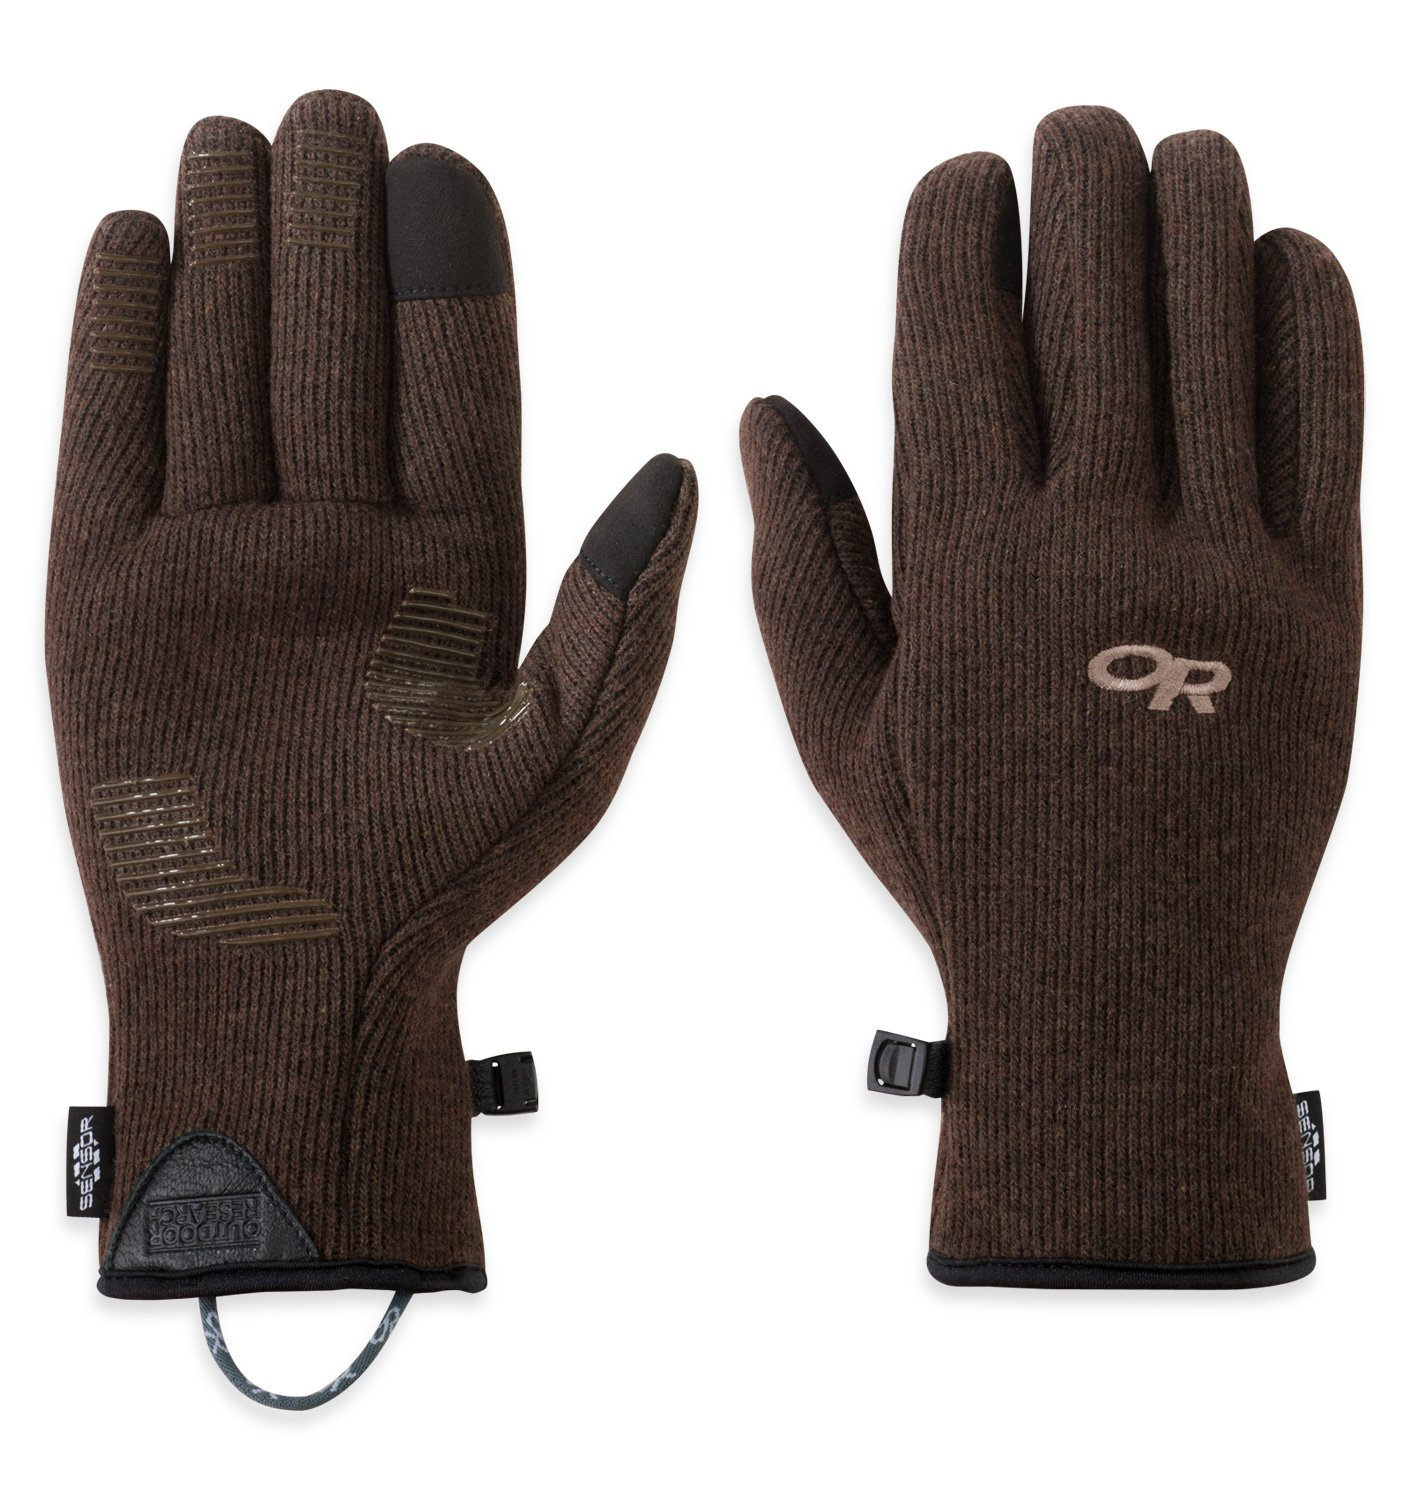 Outdoor Research Men's Flurry Sensor Gloves, Earth, X-Large